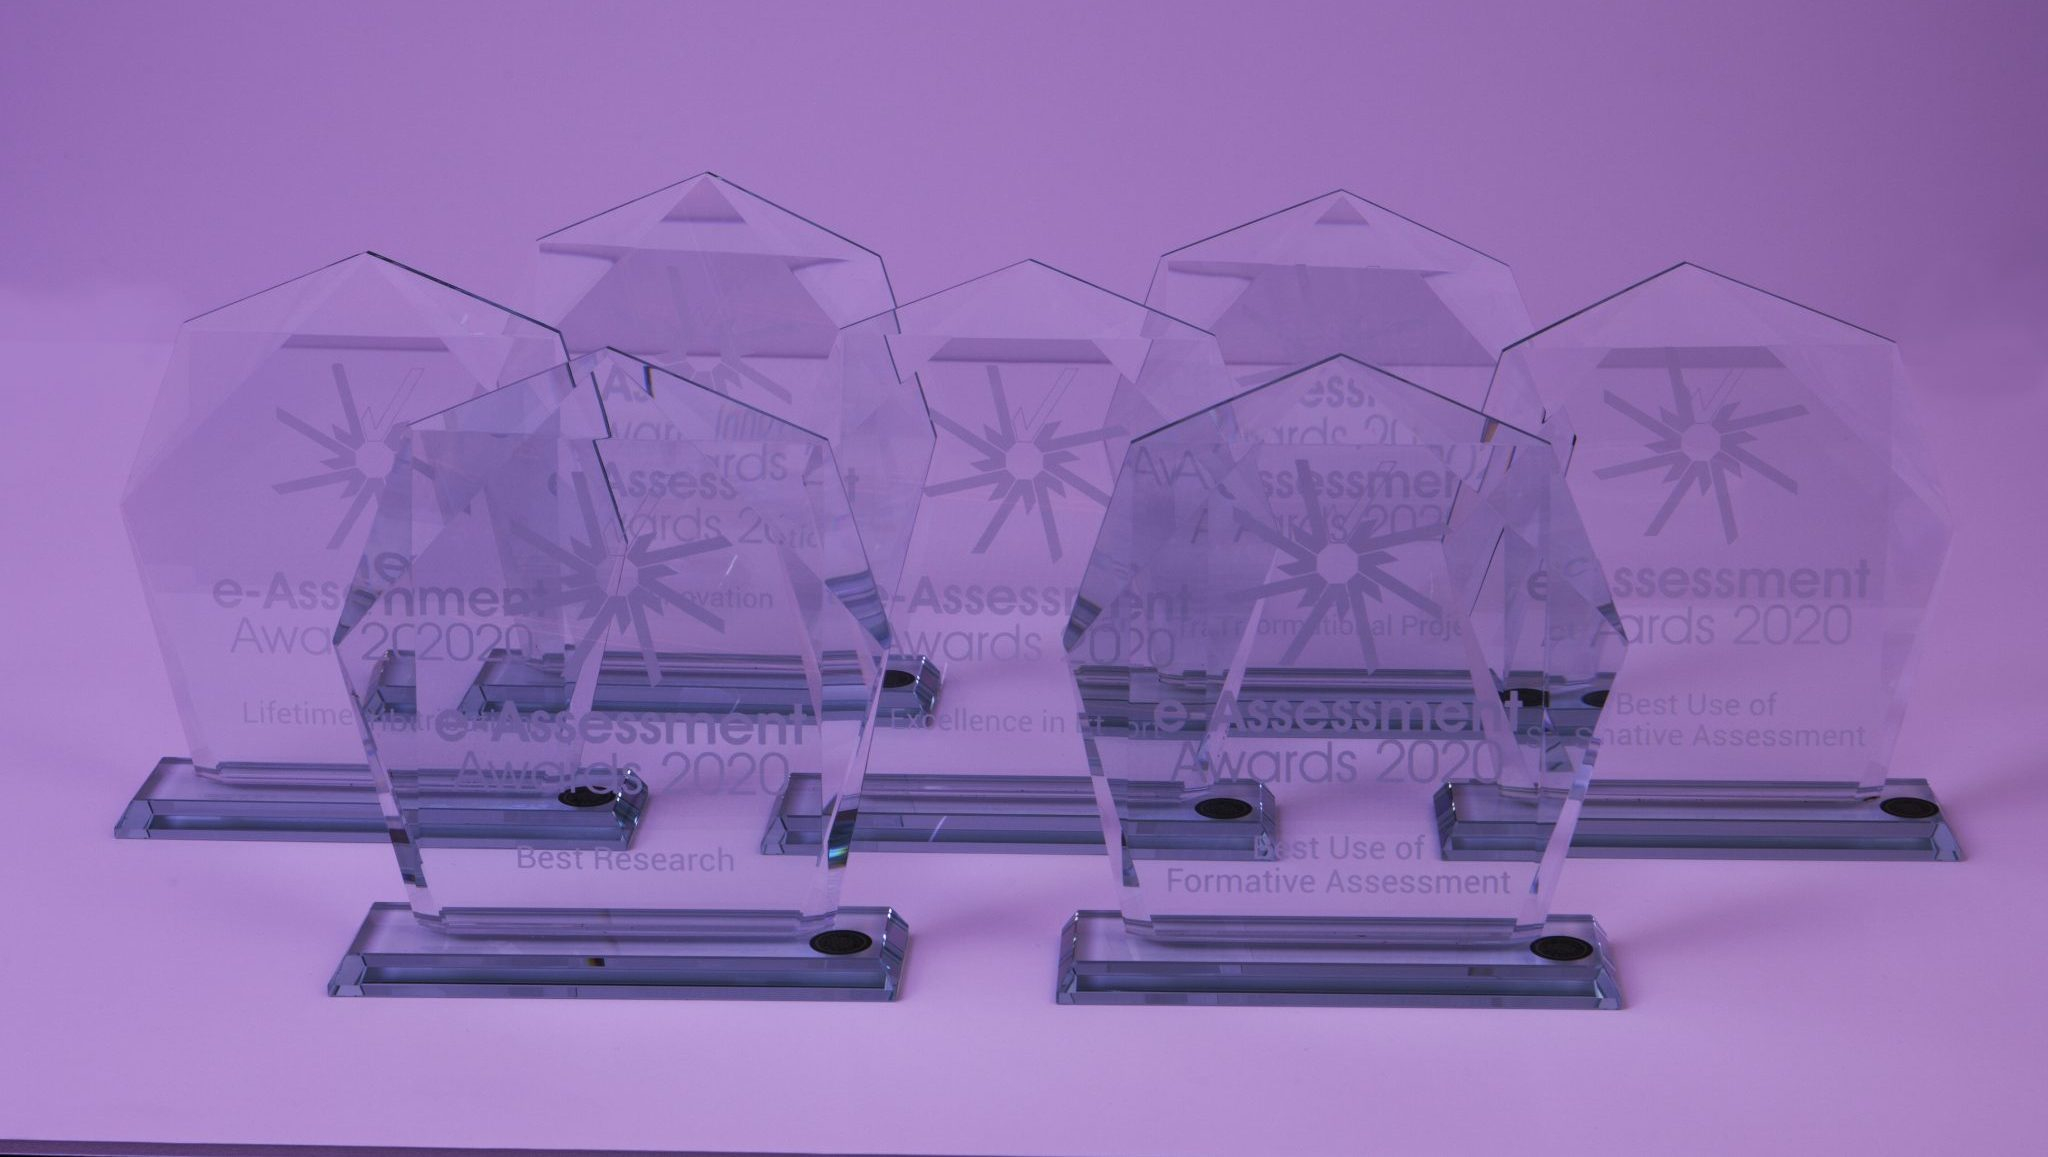 2020_awards_set_purple